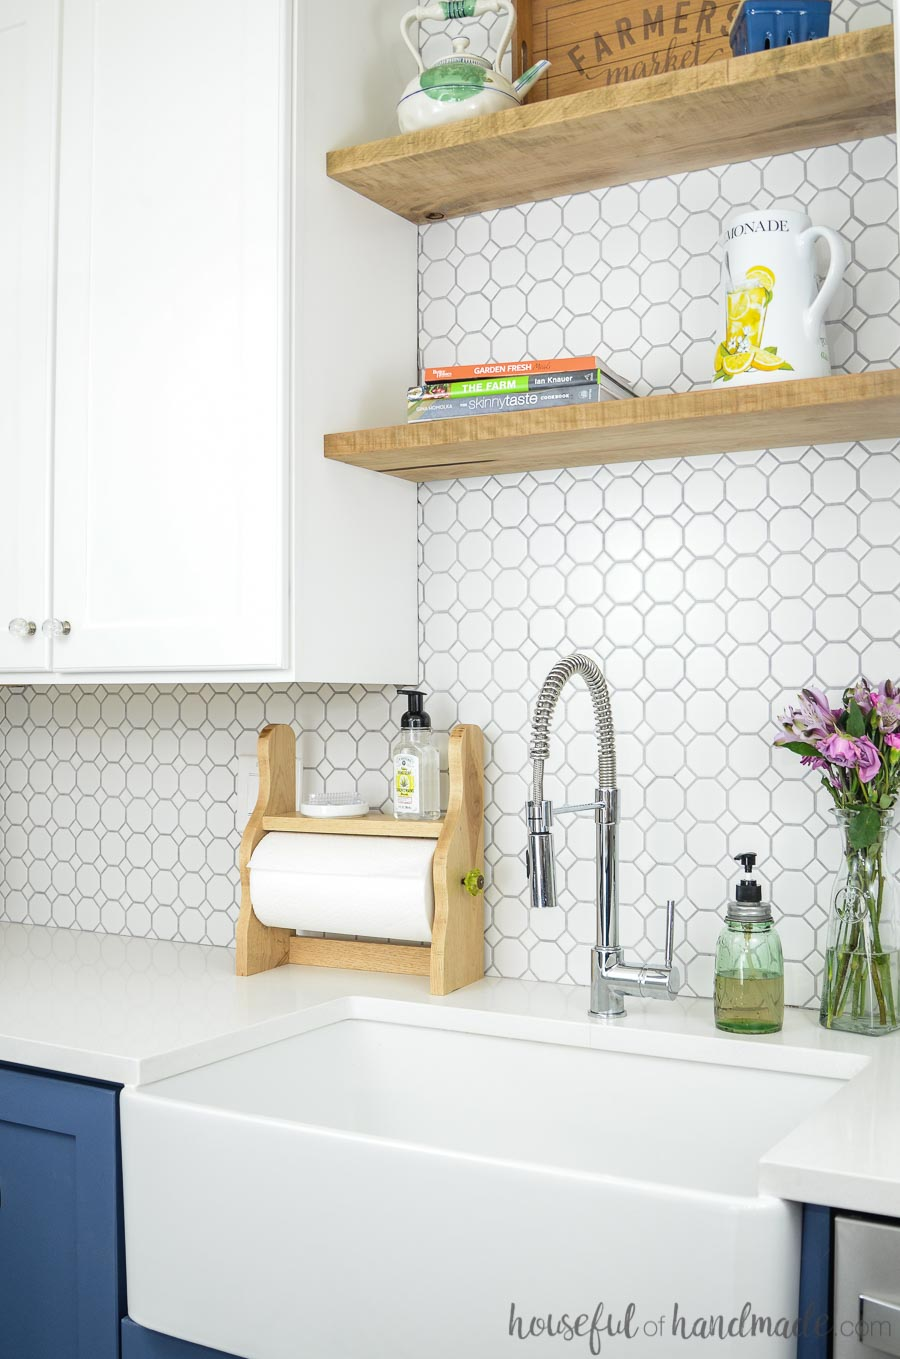 White kitchen with open shelves and white octagon tile backsplash shown with diy farmhouse paper towel holder